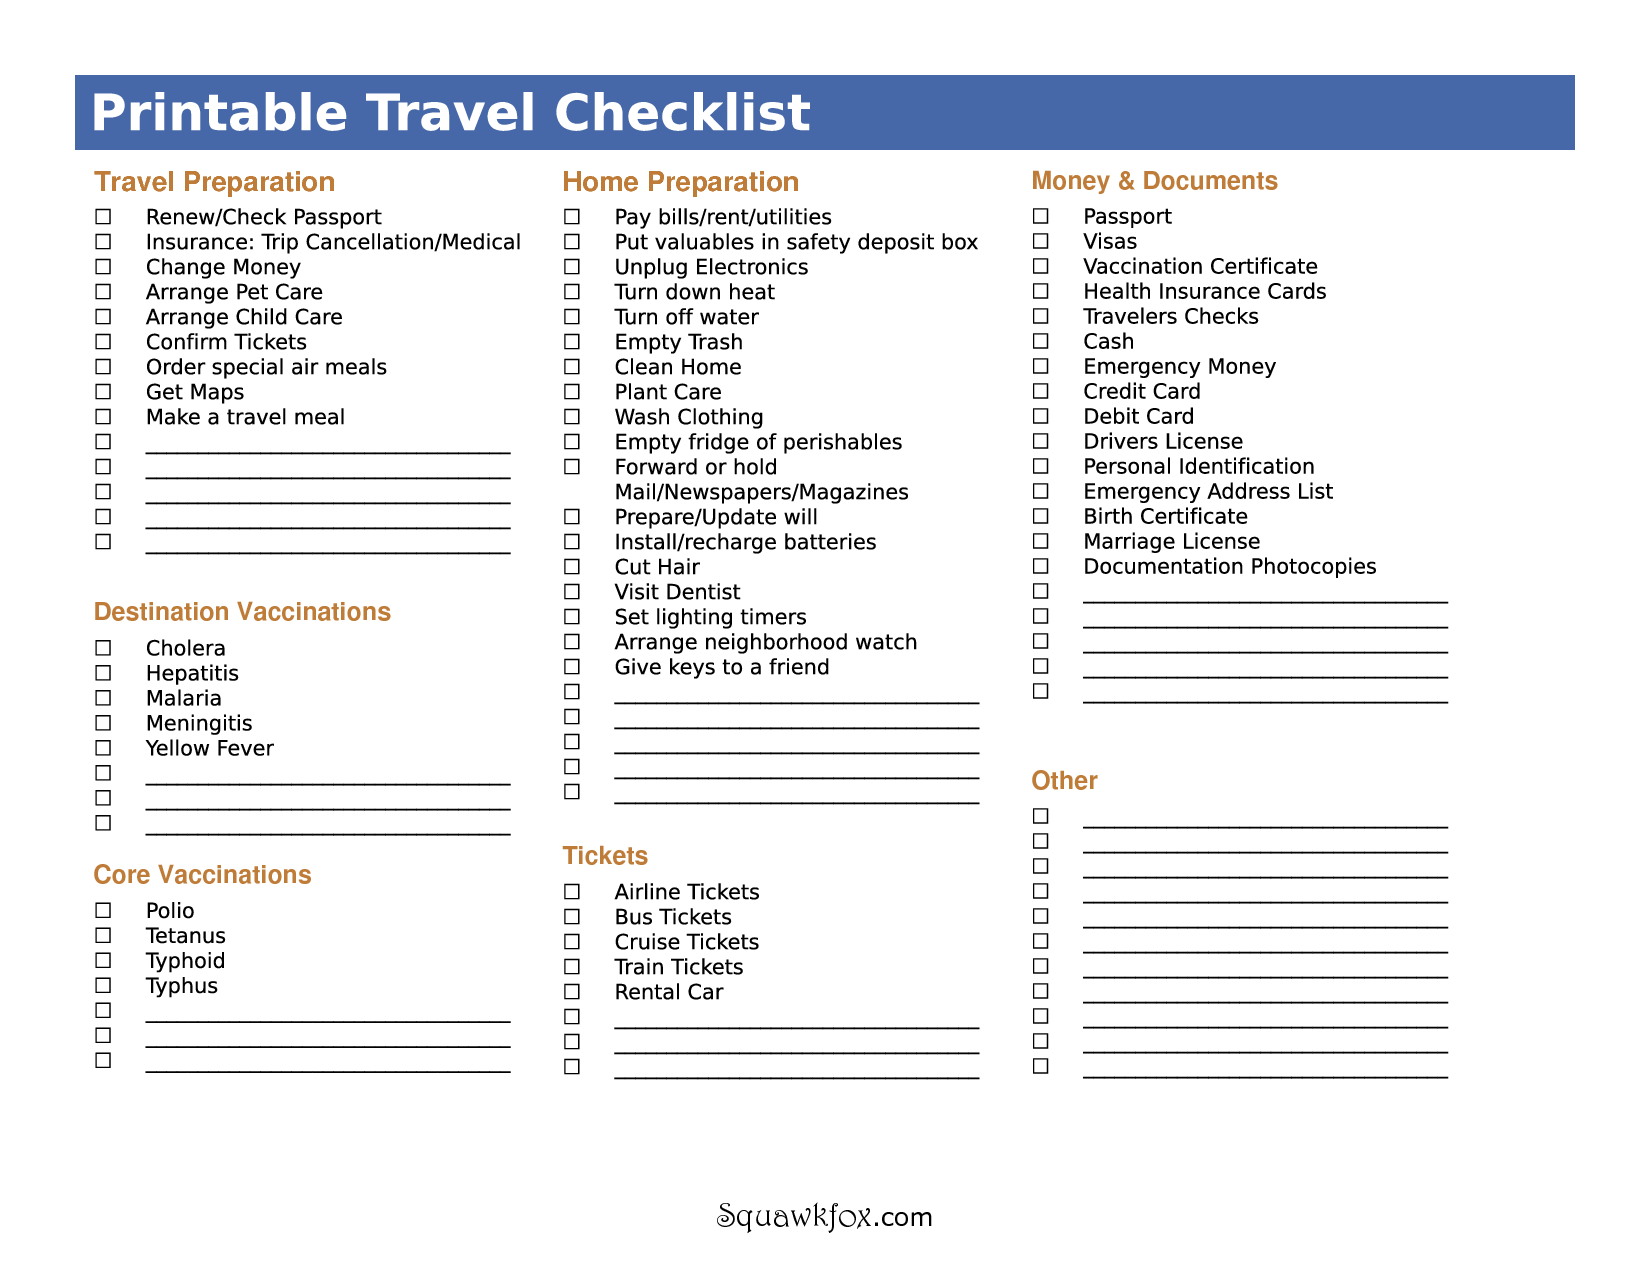 ItS Not Just What To Pack But What To Do Before You Travel